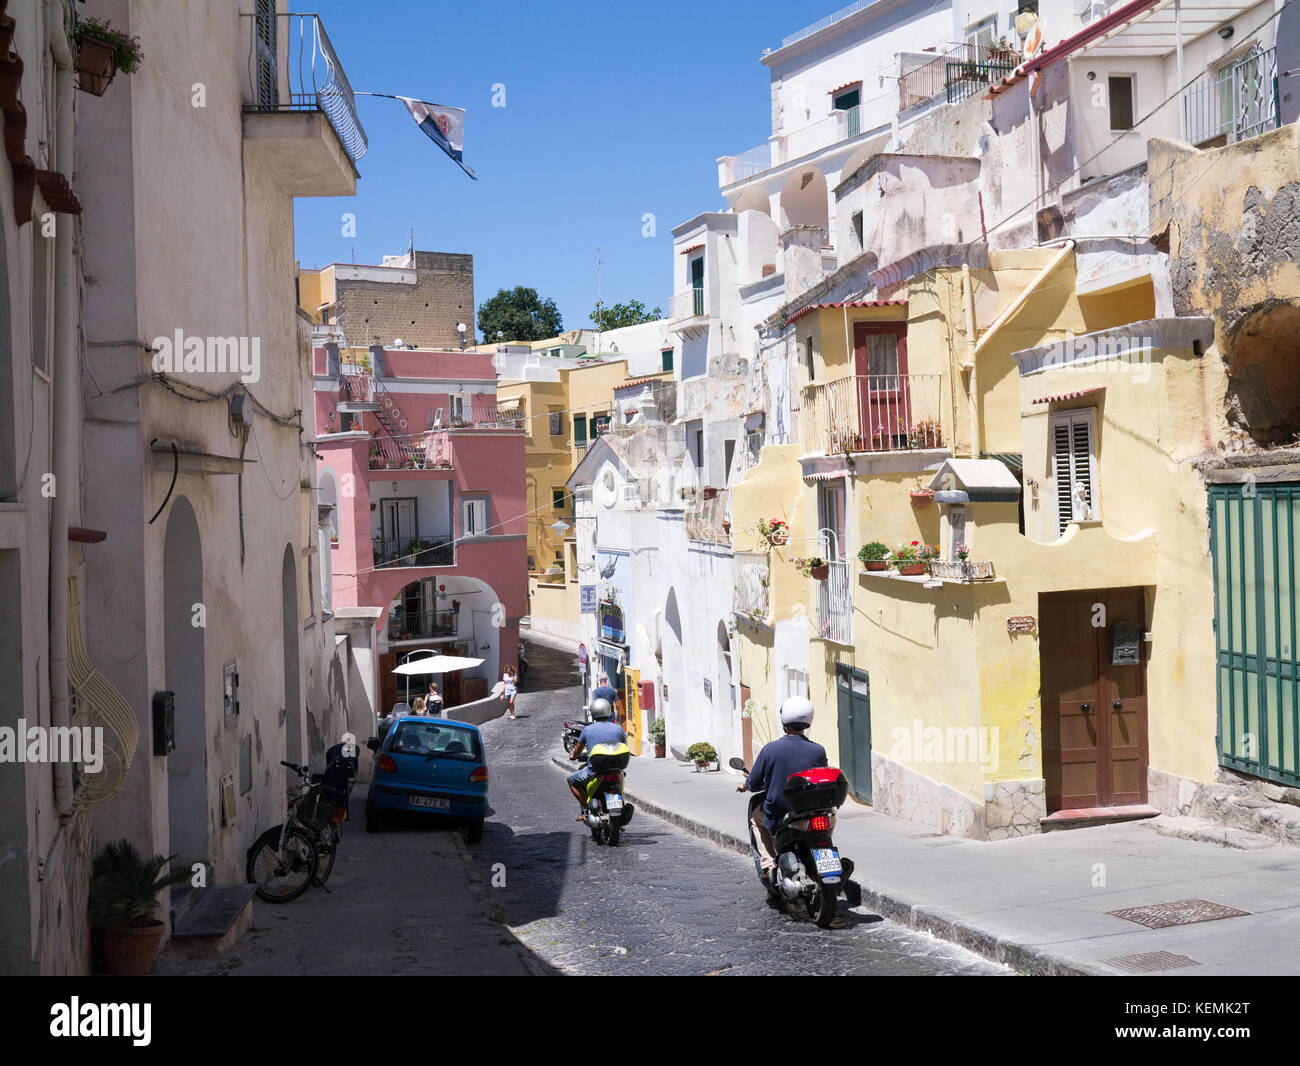 A street scene on the island of Procida, Italy Stock Photo